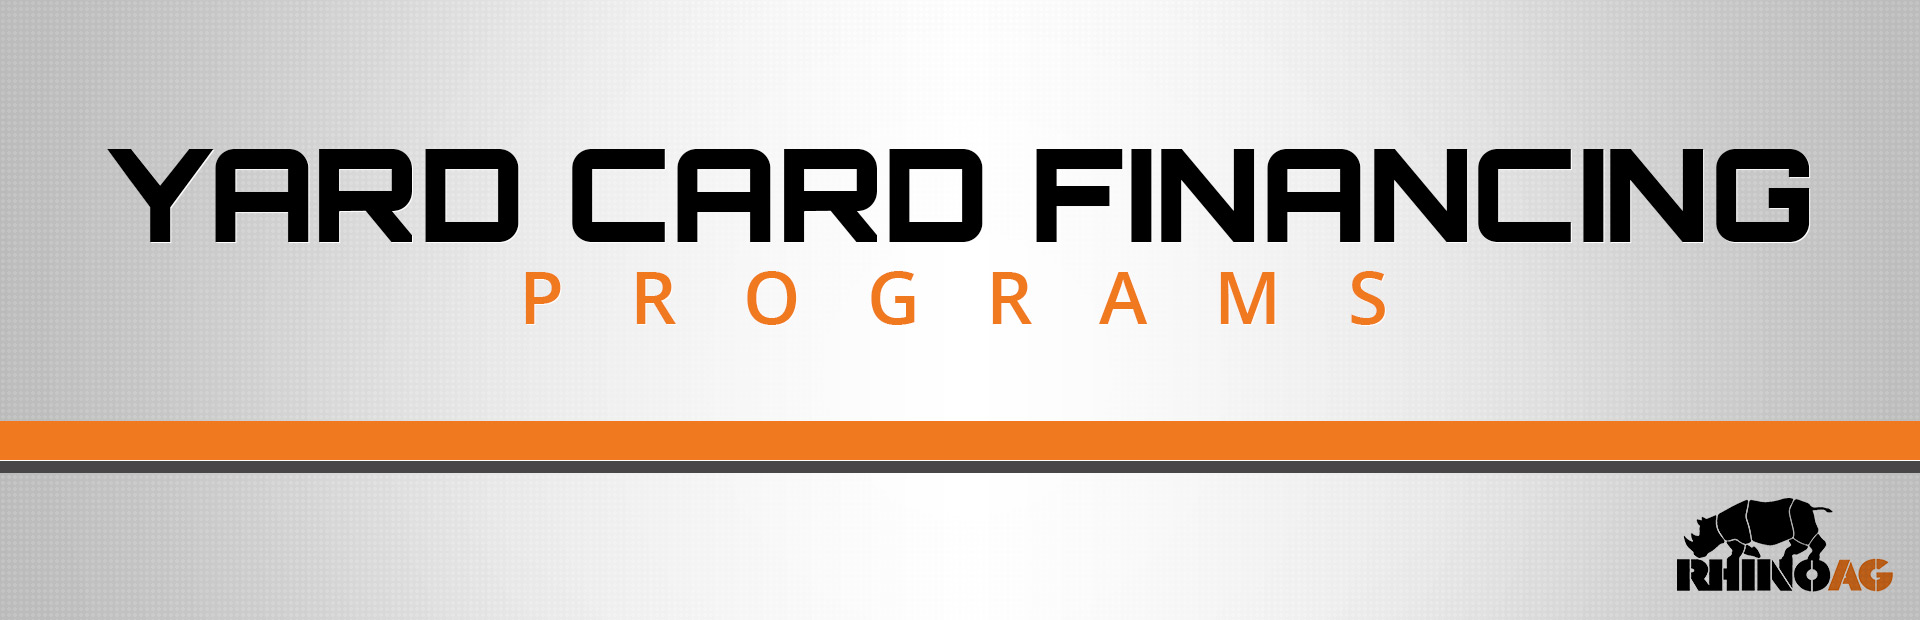 RhinoAg: Rhino AG – Yard Card Financing Programs